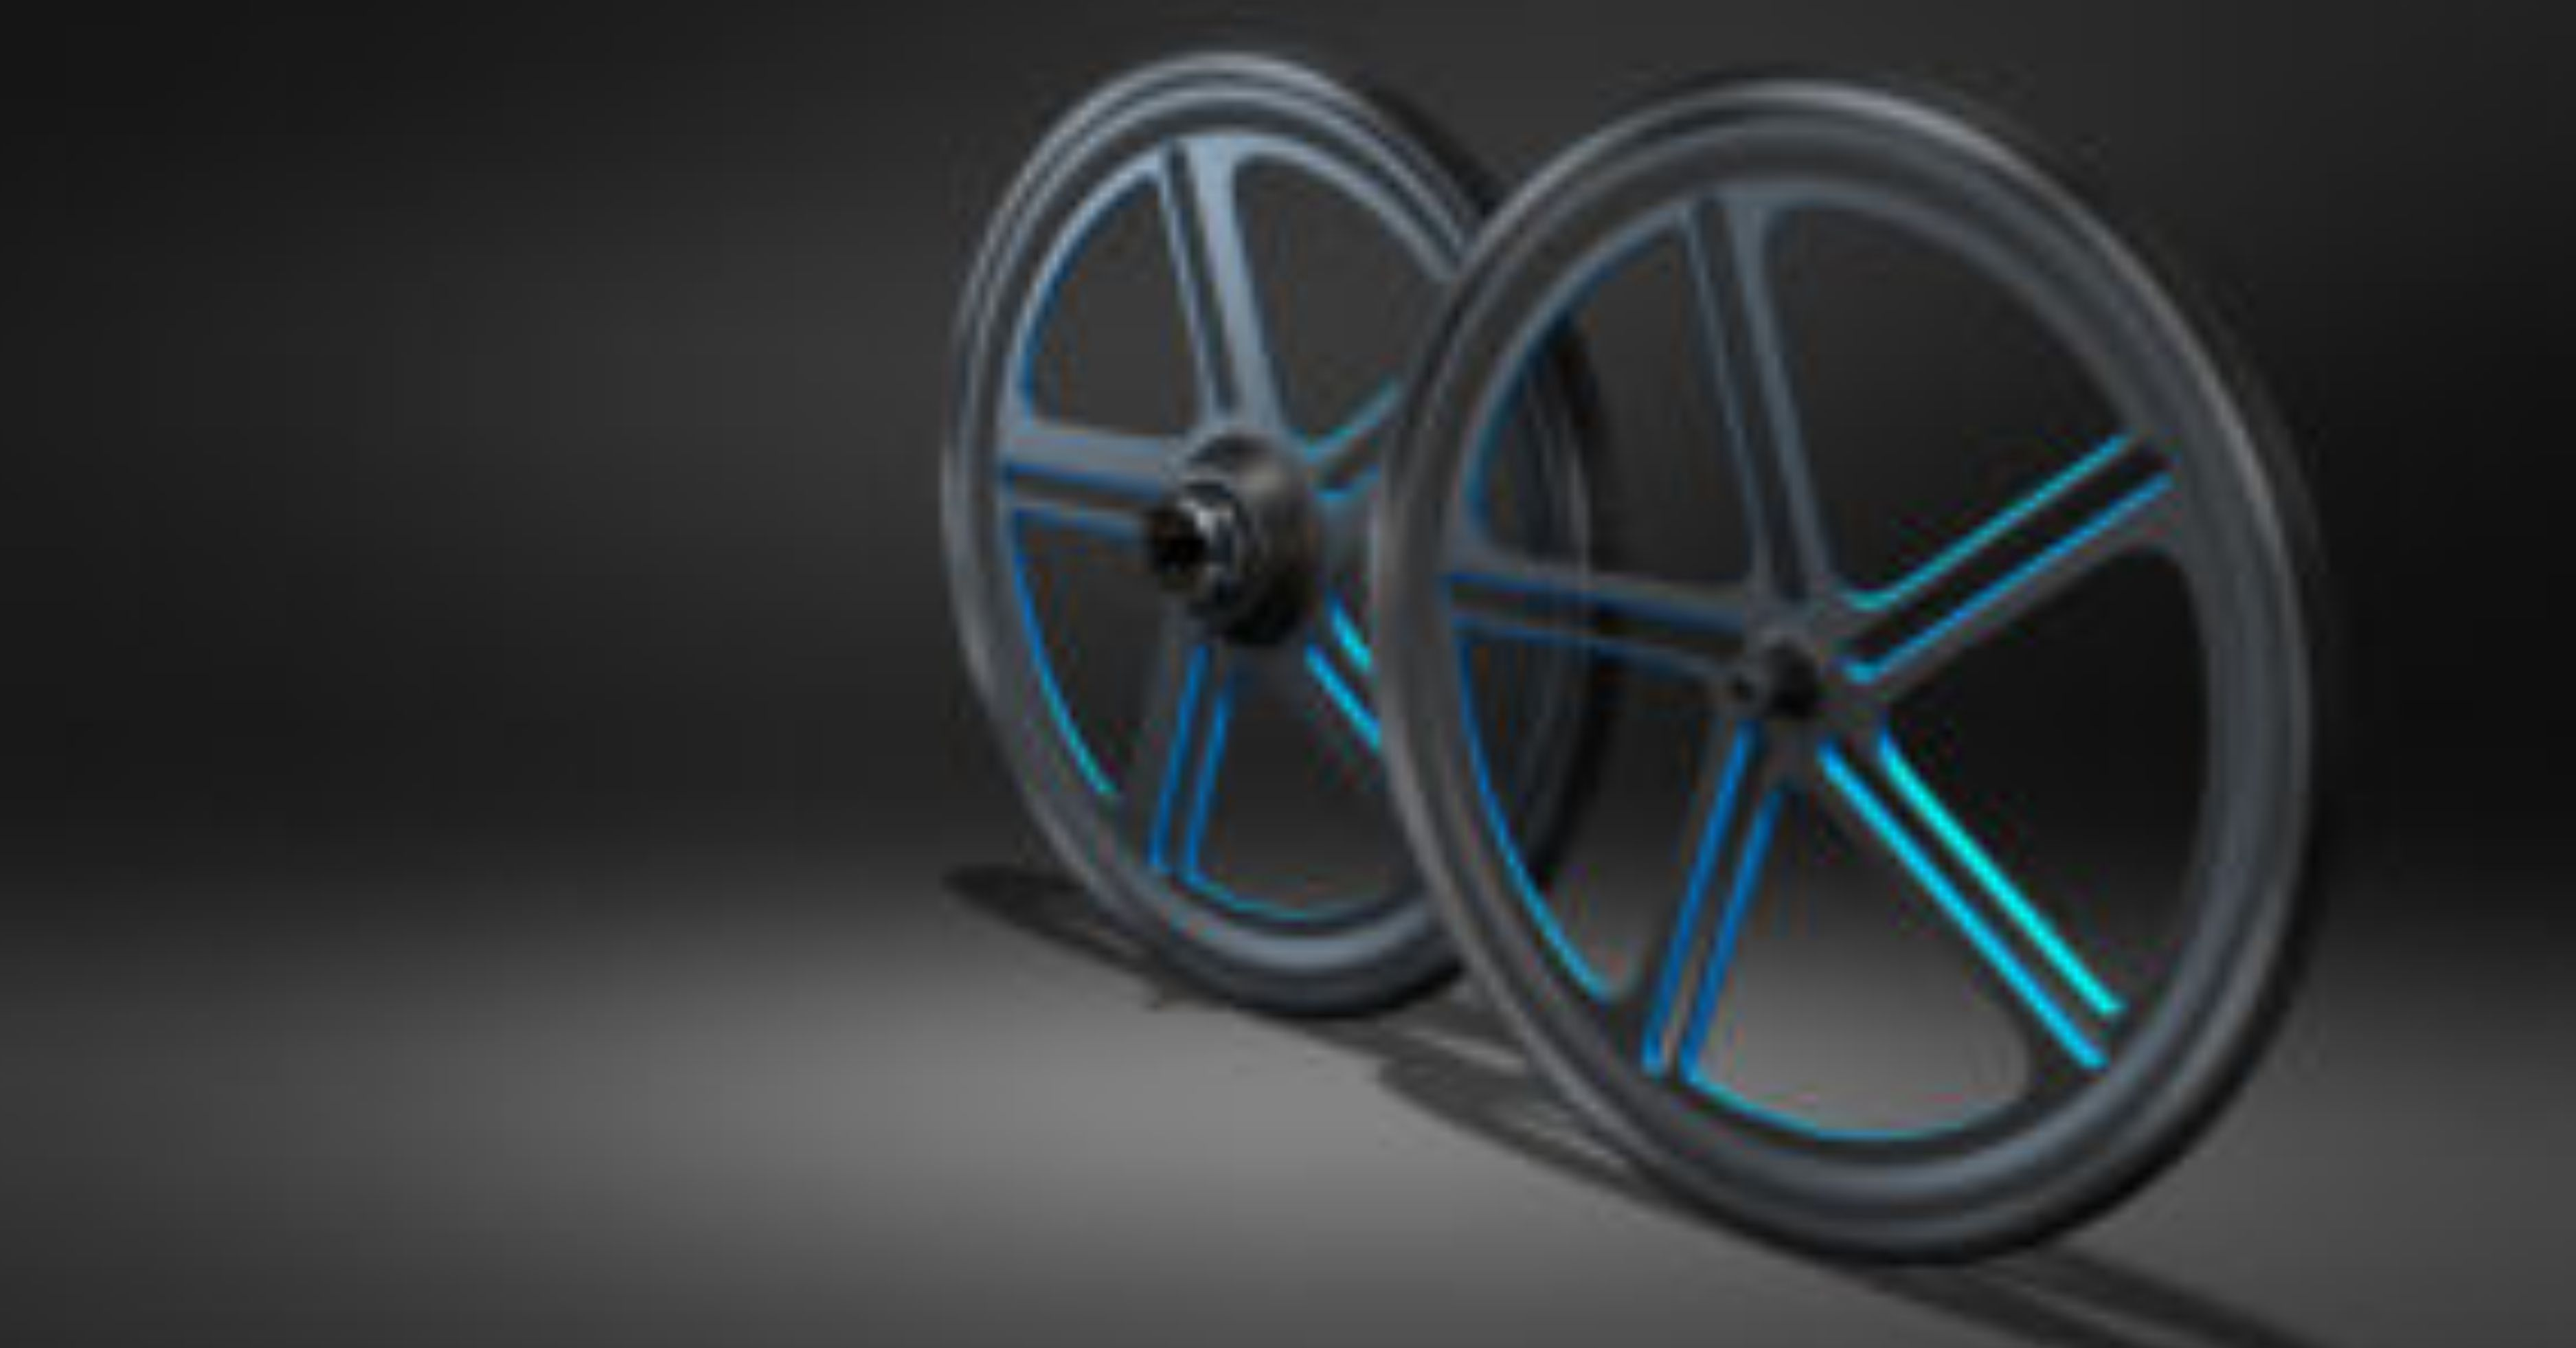 AREVO will display world's first 3D-Printed Carbon Fiber Unibody Bike Frame and Rim